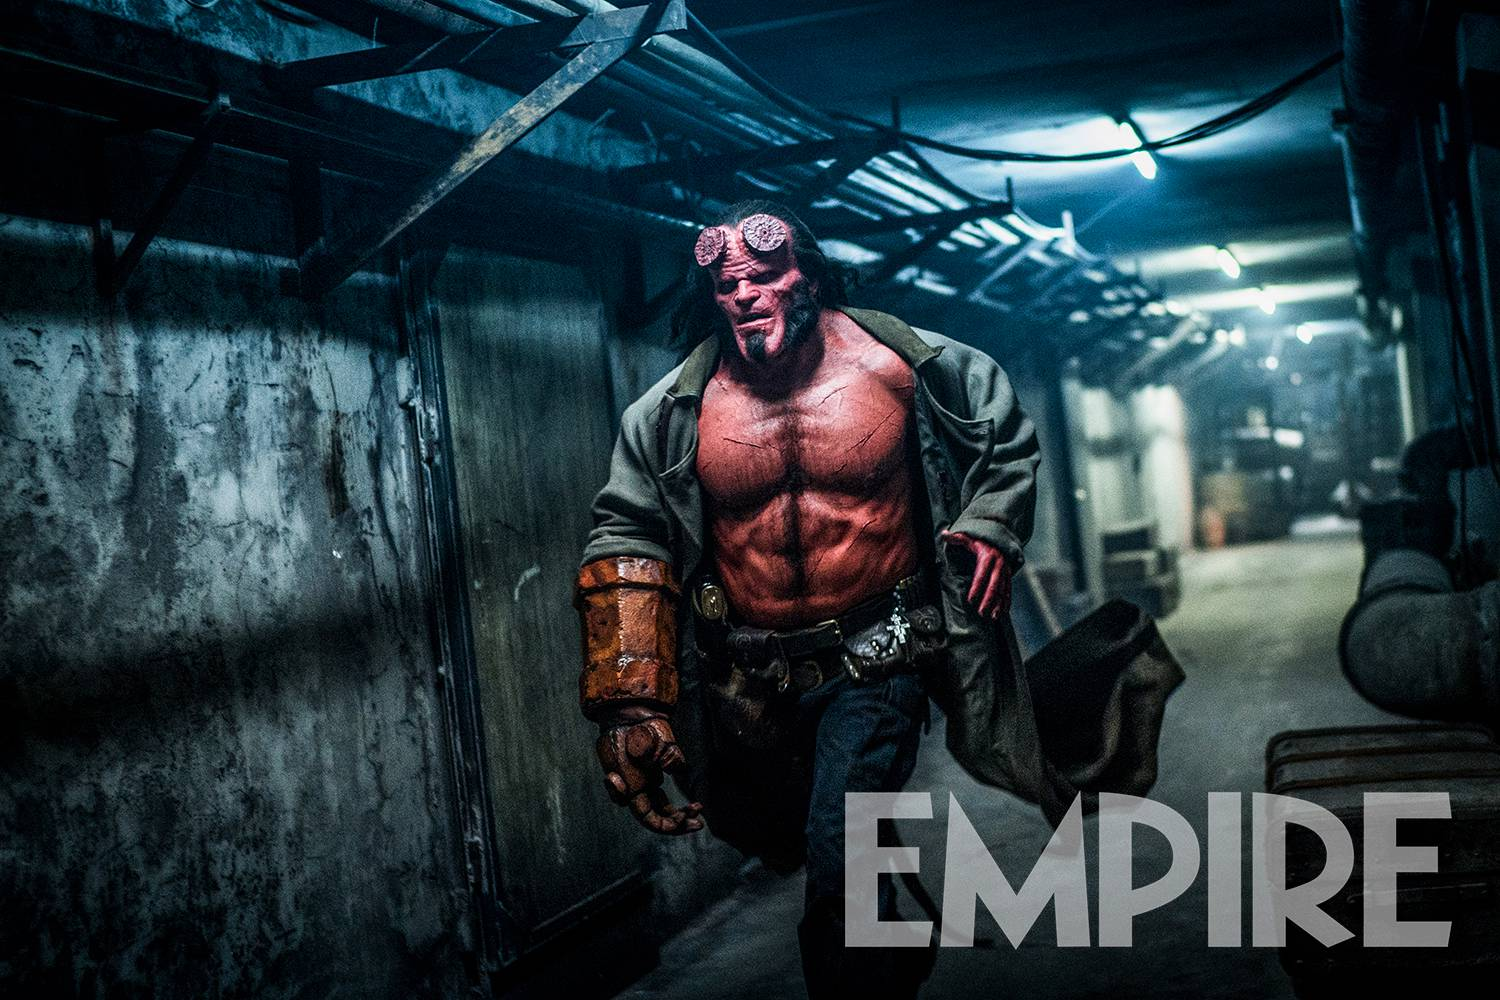 exciting-new-image-from-hellboy-featuring-david-harbour-in-the-title-role1.jpg